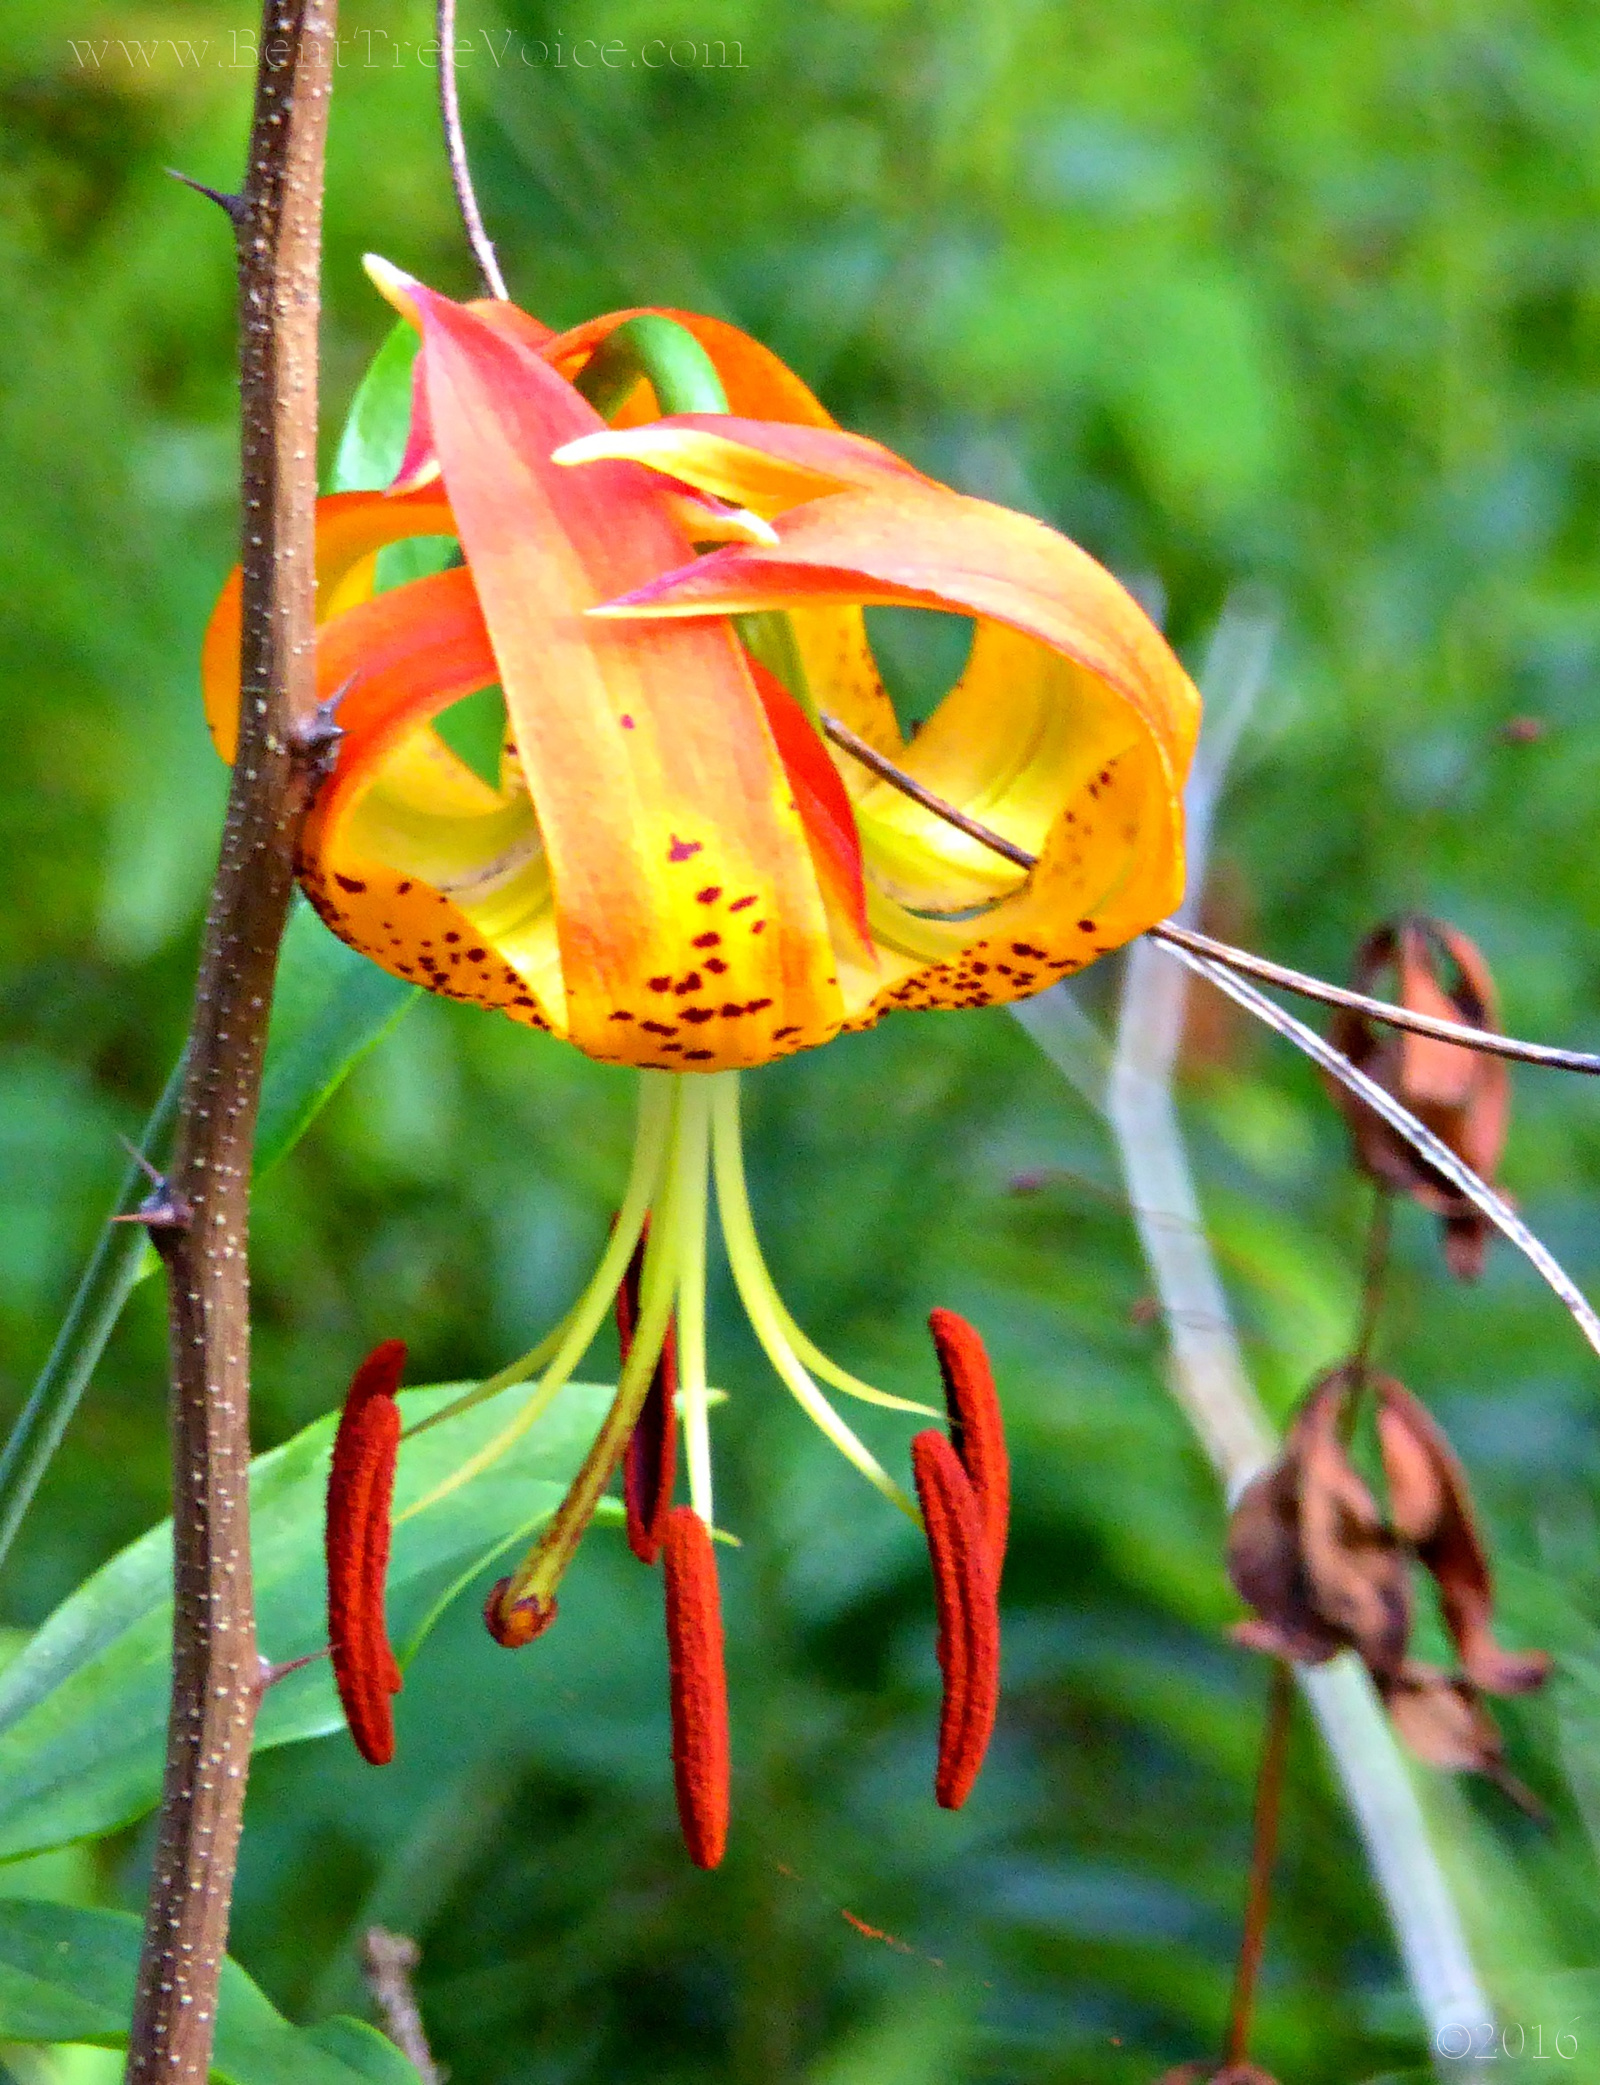 July 19, 2016 - Turk's Cap Lily in Bent Tree